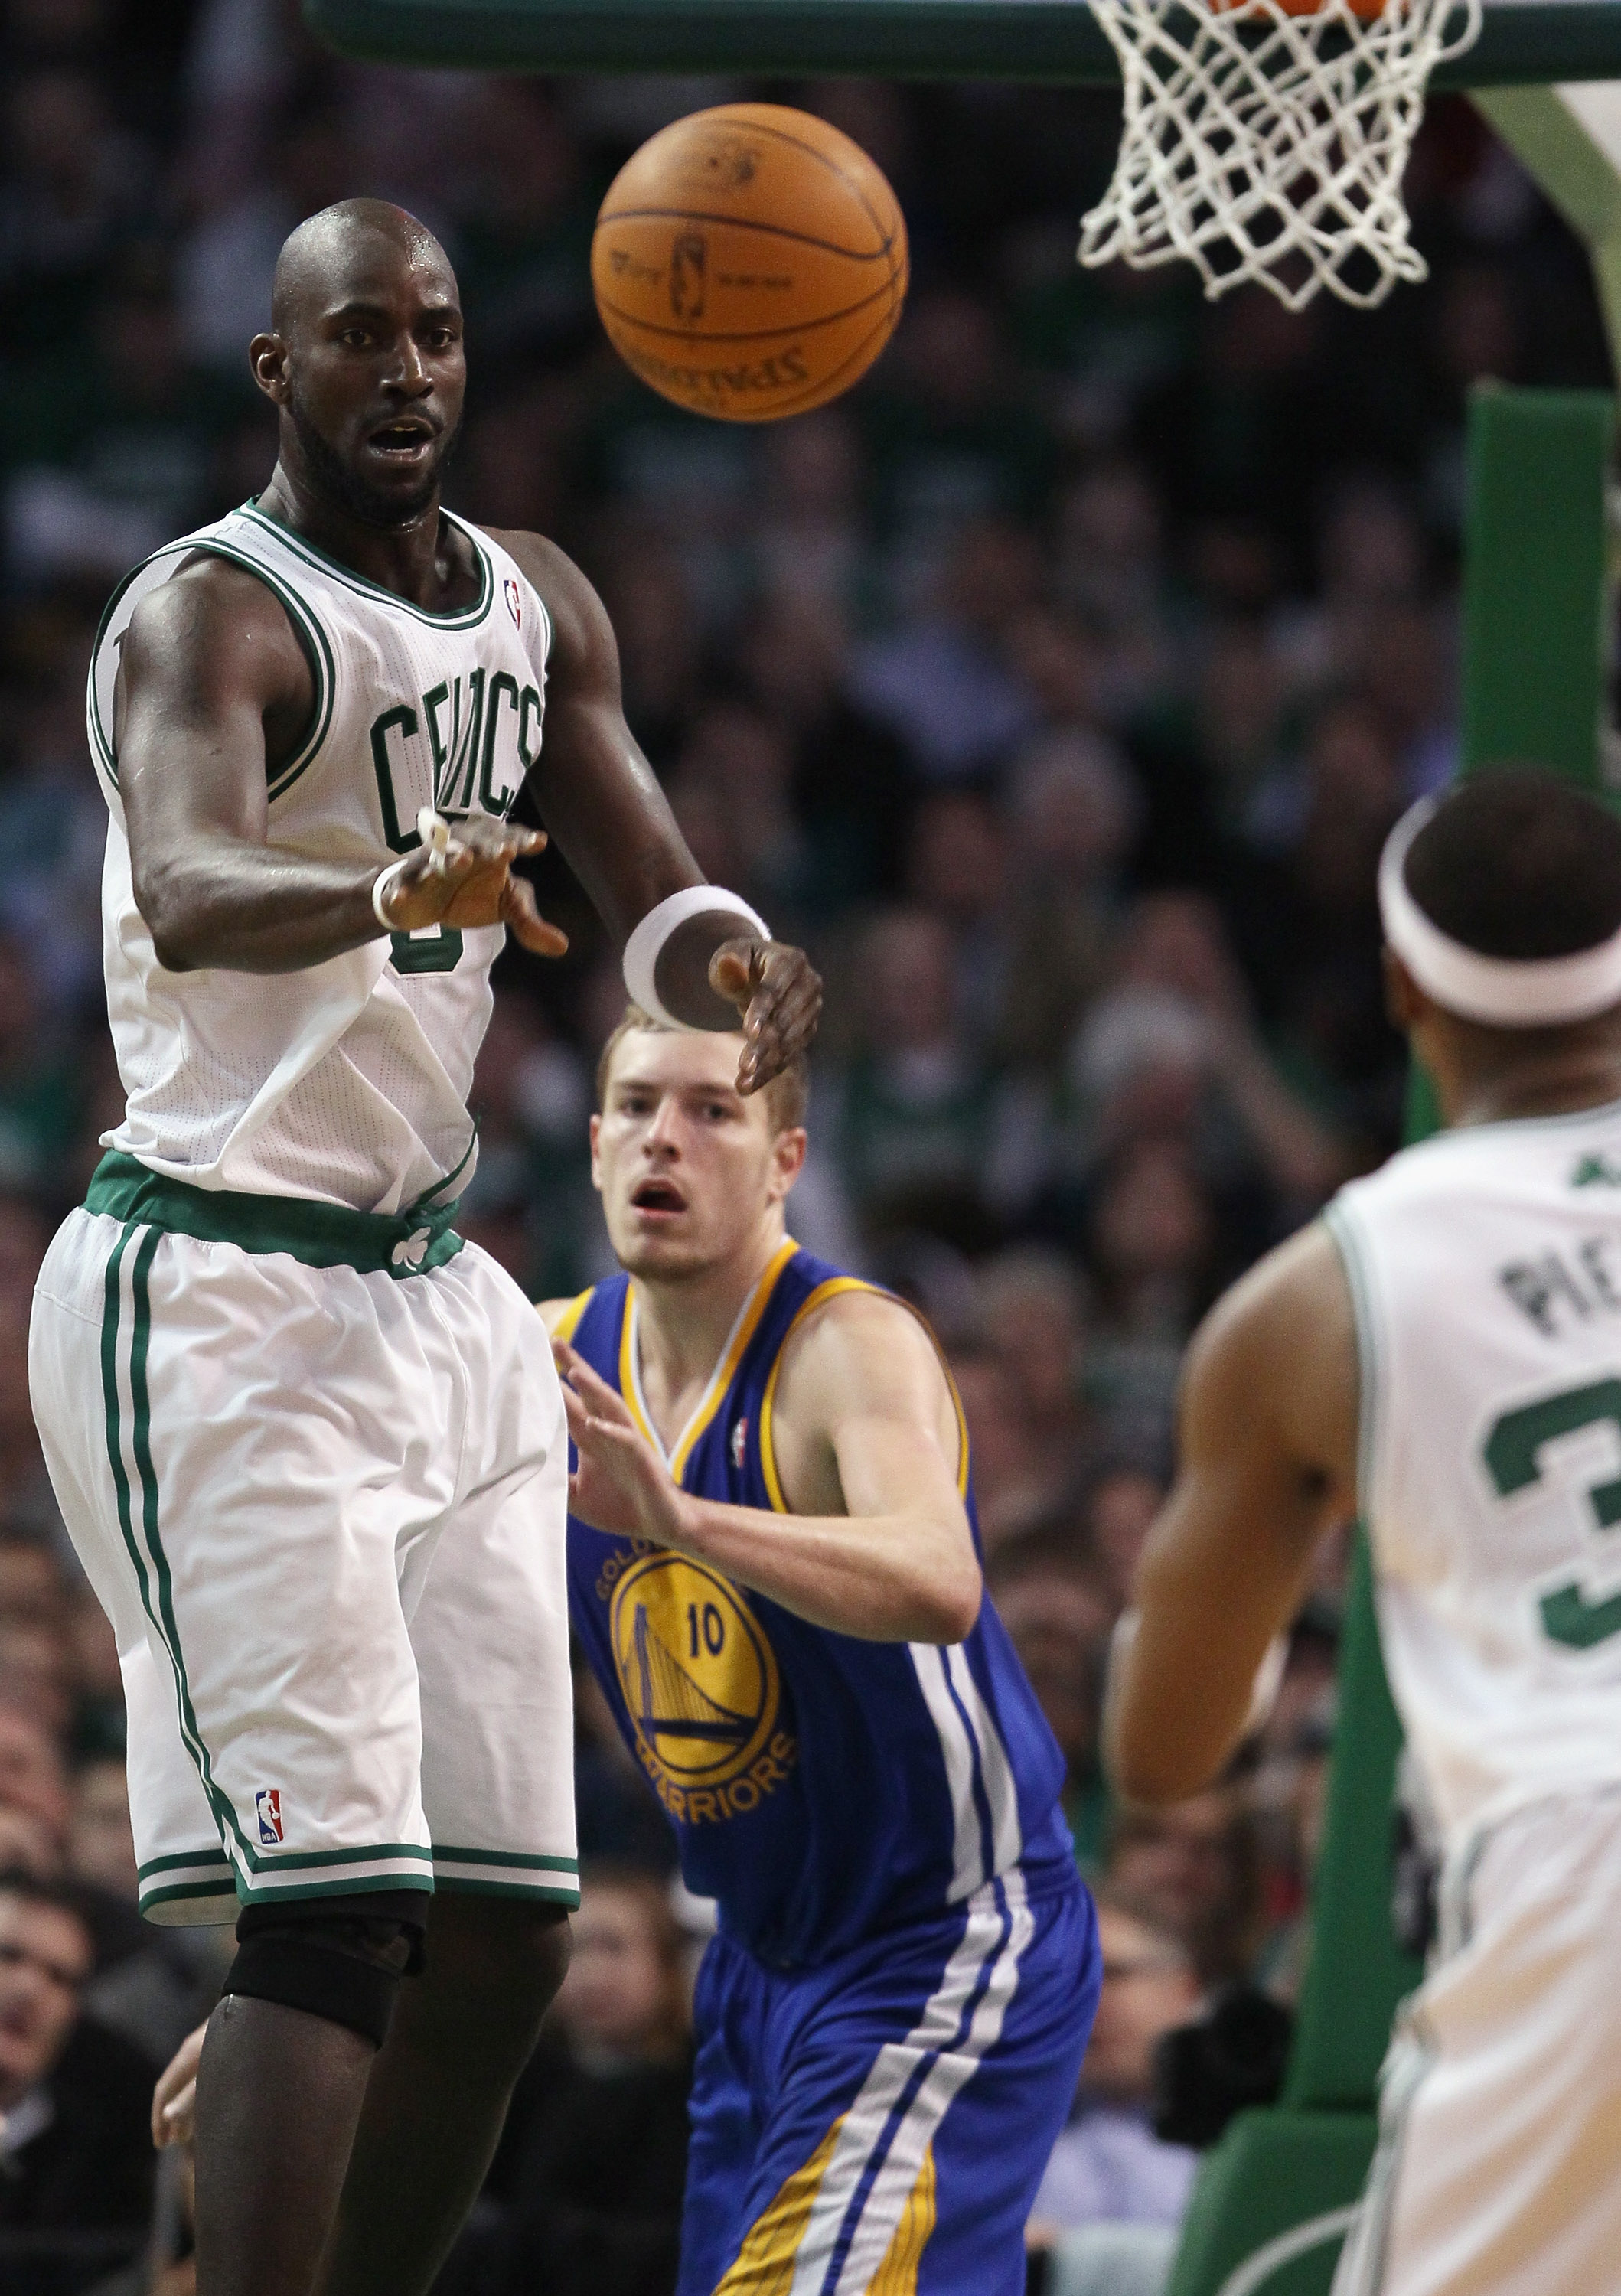 BOSTON, MA - MARCH 04: Kevin Garnett #5 of the Boston Celtics passes the ball to Paul Pierce #34 as David Lee #10 of the Golden State Warriors defends on March 4, 2011 at the TD Garden in Boston, Massachusetts.  The Celtics defeated the Warriors 107-103.